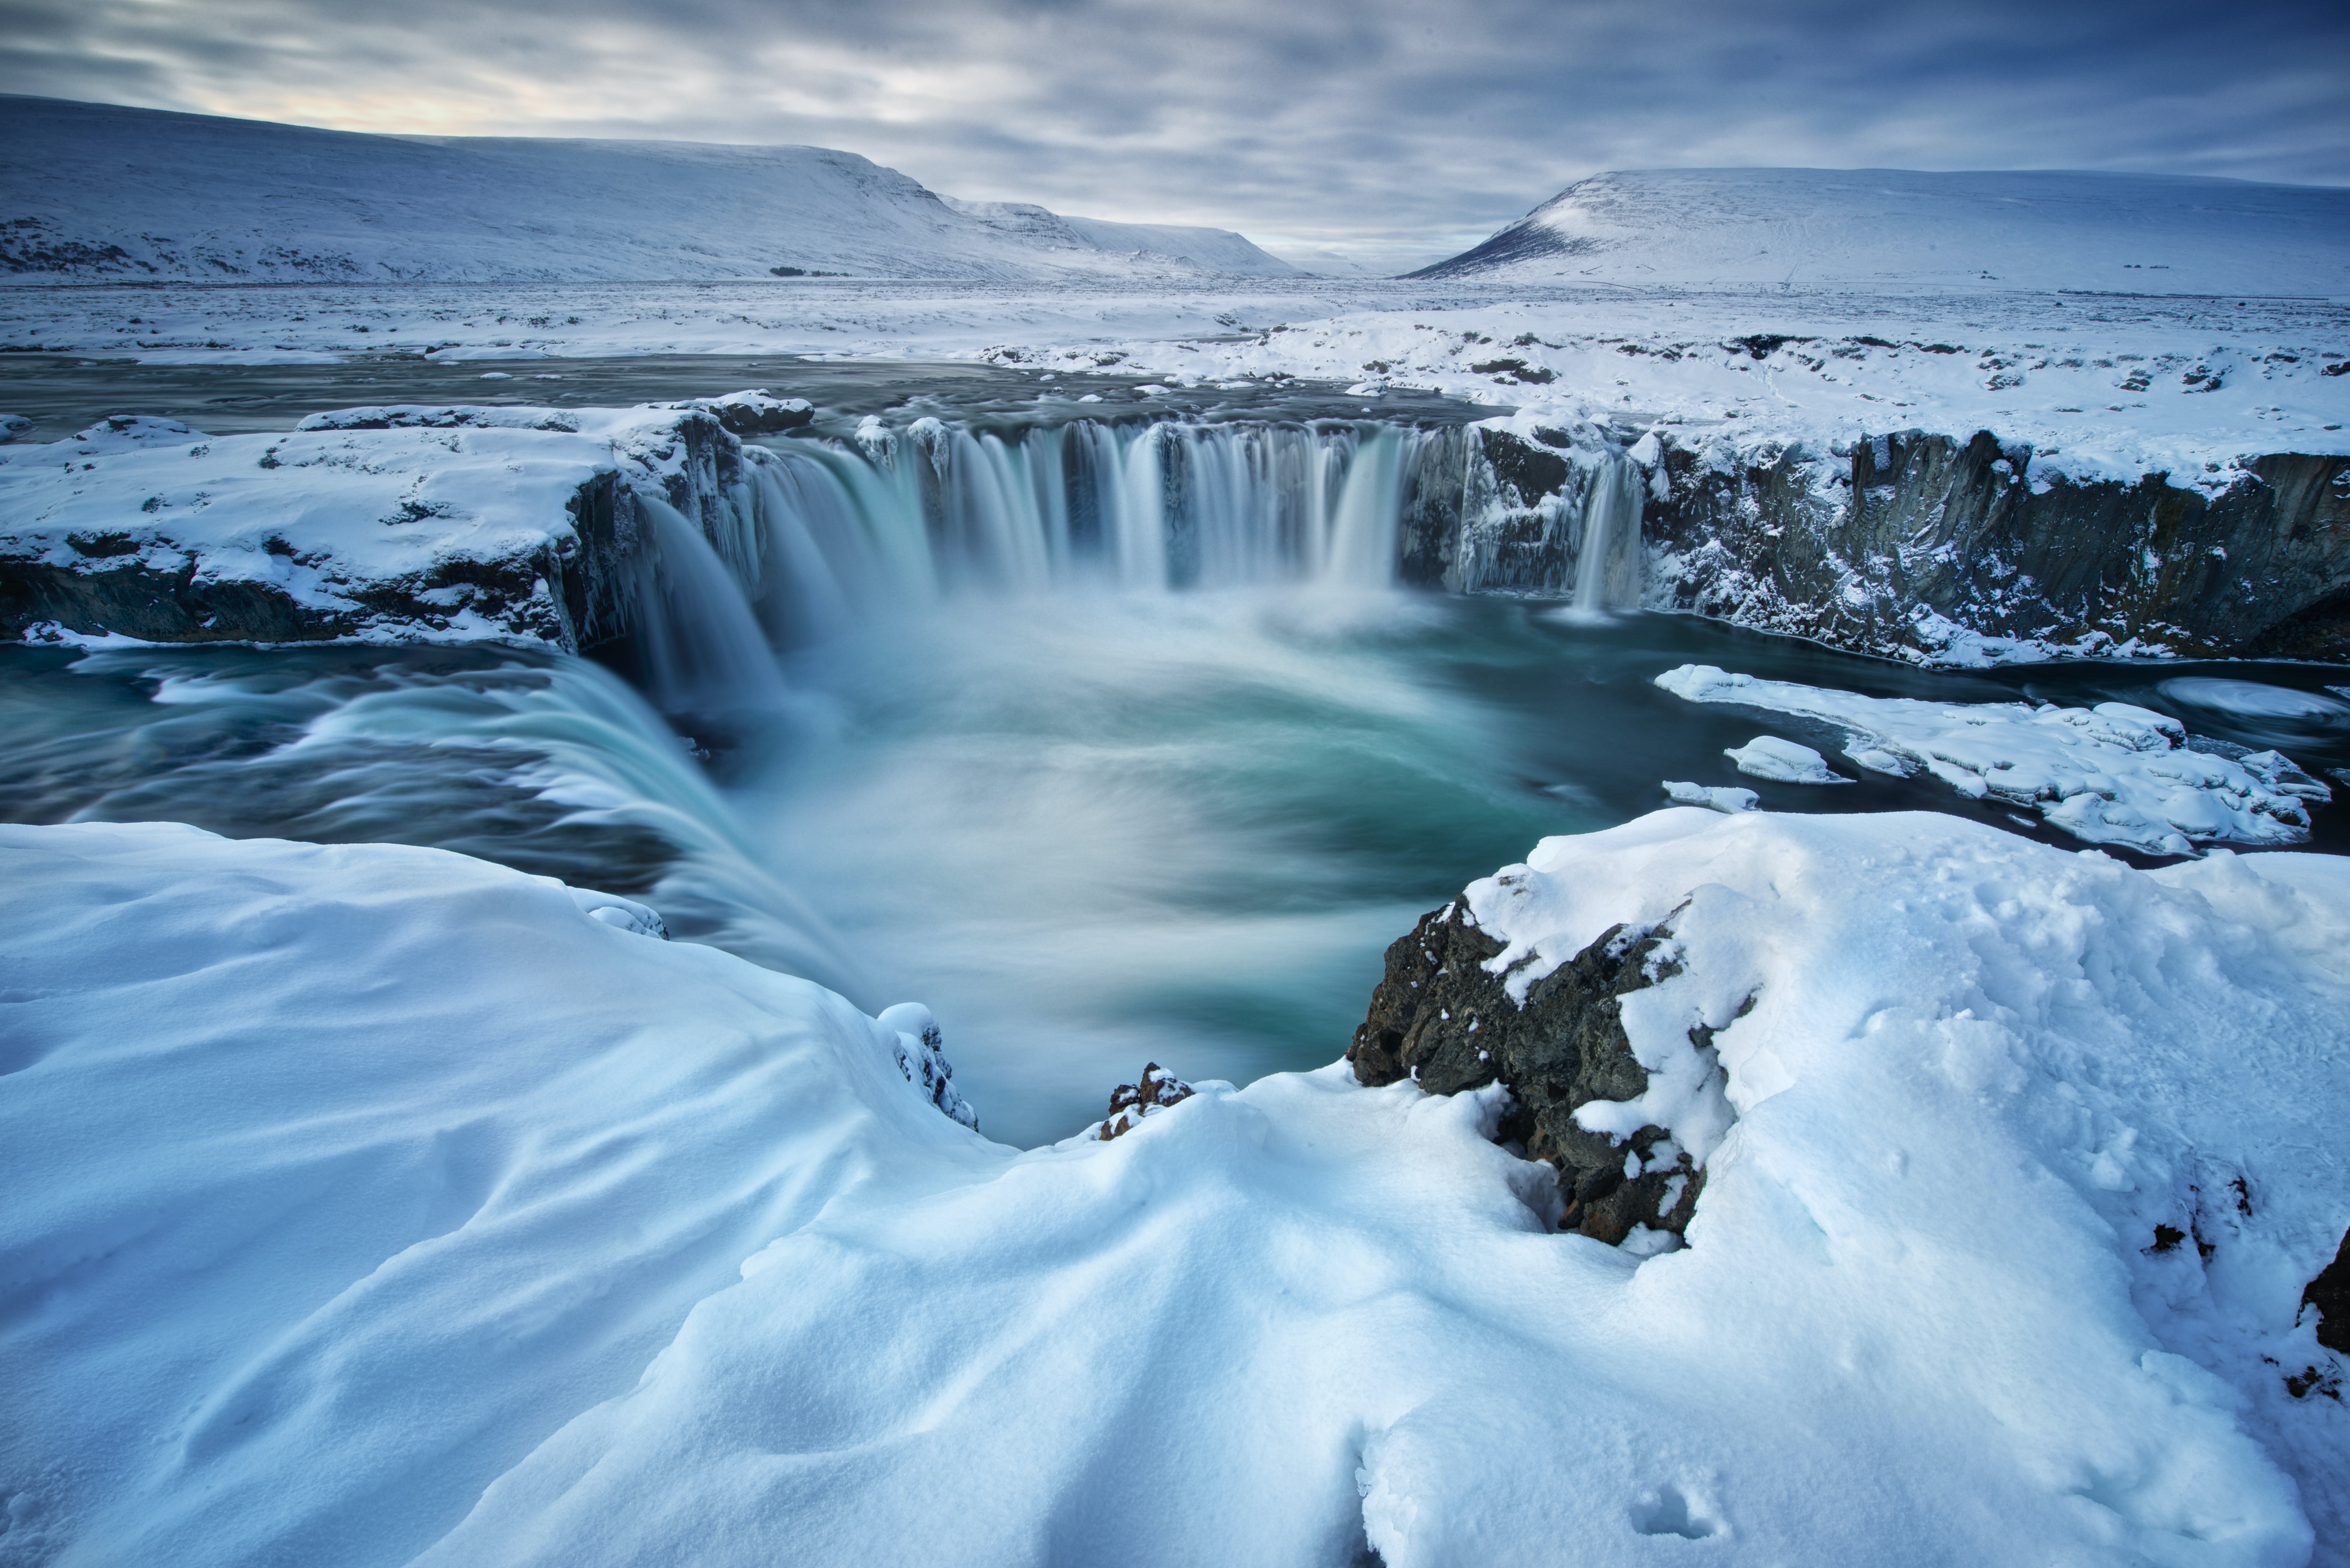 time lapse photography of waterfalls in snow